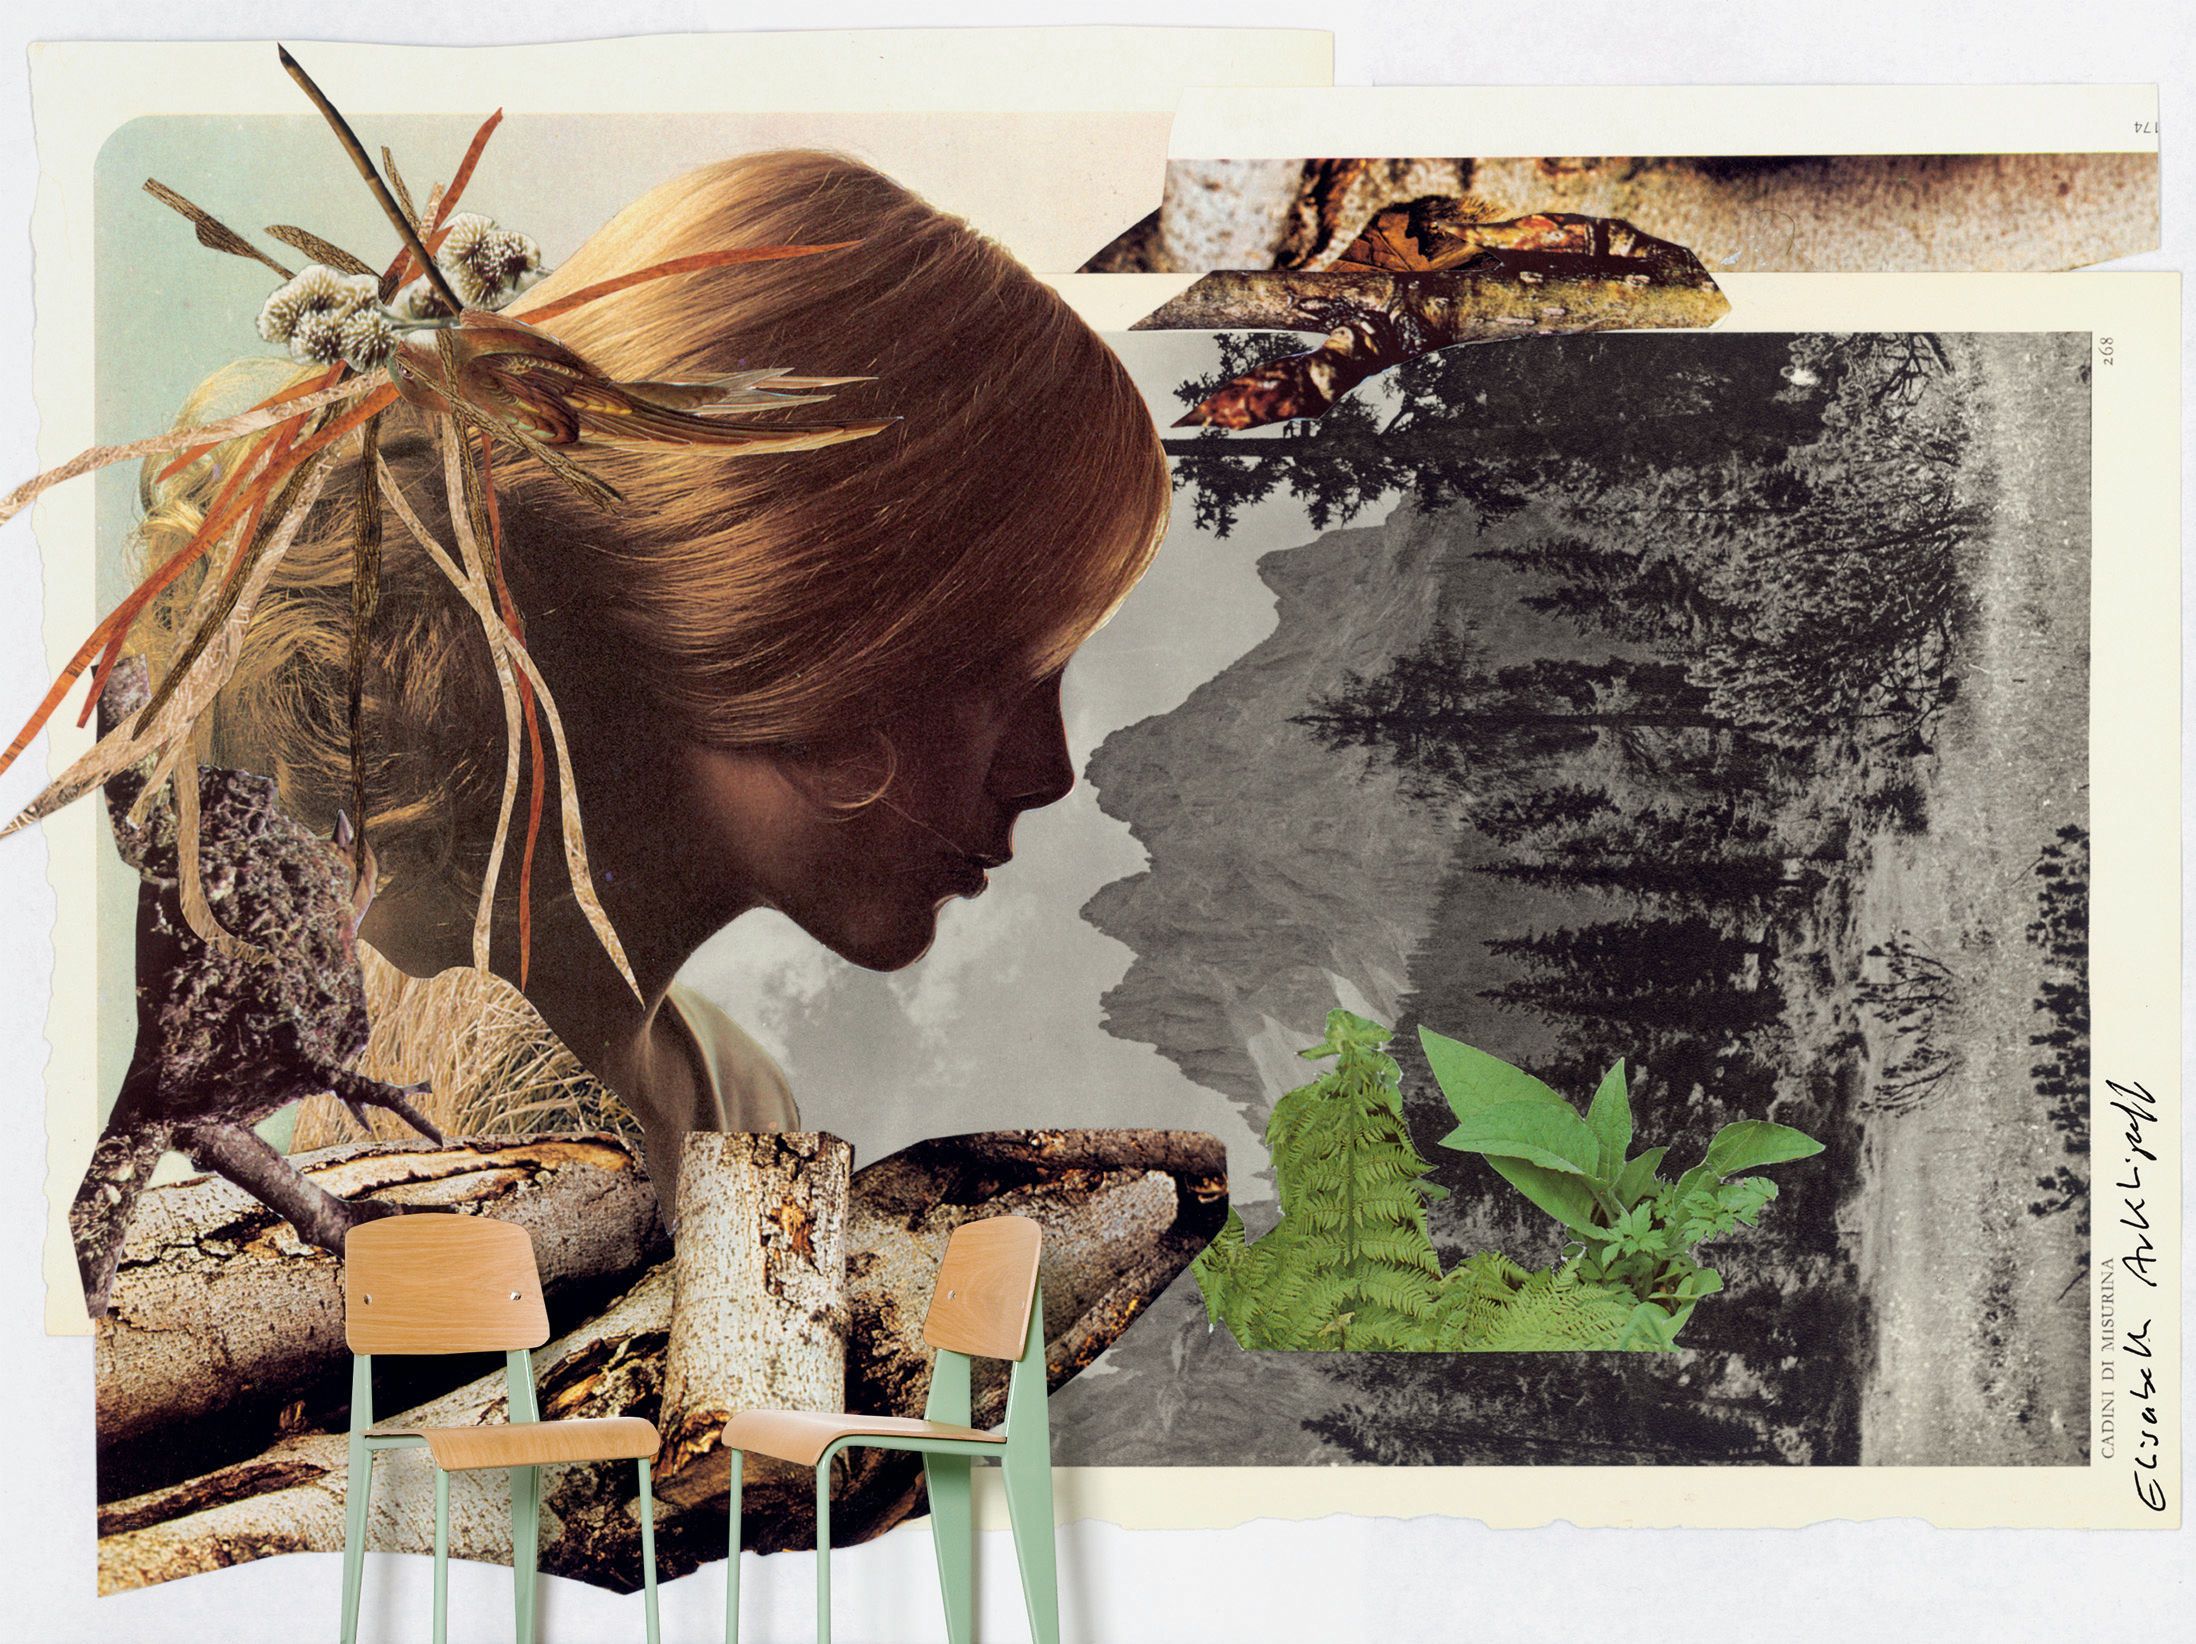 Decoration - Wallpaper & Wall Stickers - Arkhipoff Landscape Panoramic Wallpaper - 8 panels by Domestic -  - Intisse paper